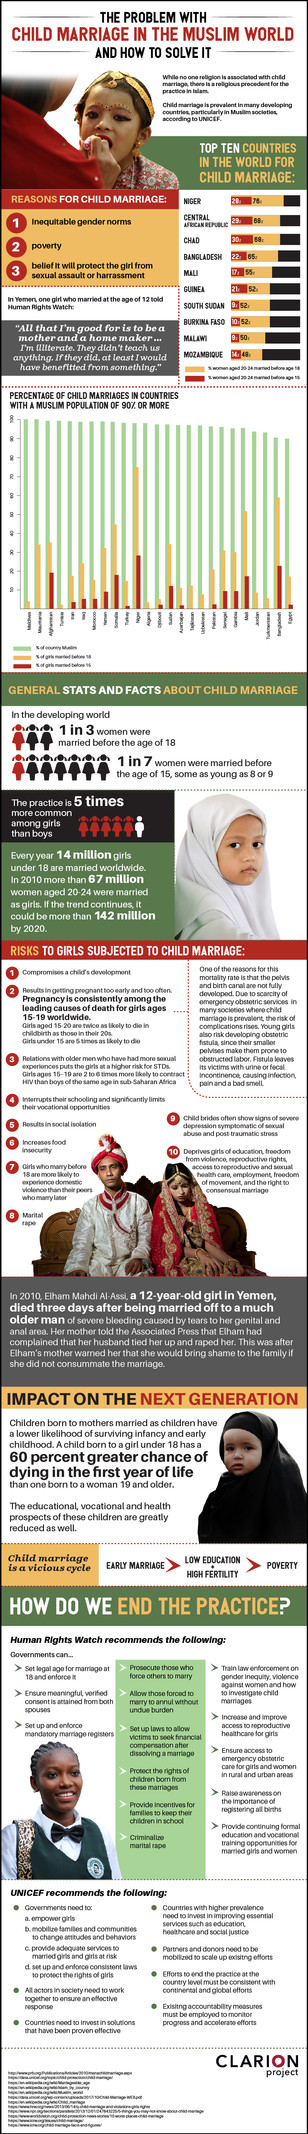 Child Marriage - Clarion